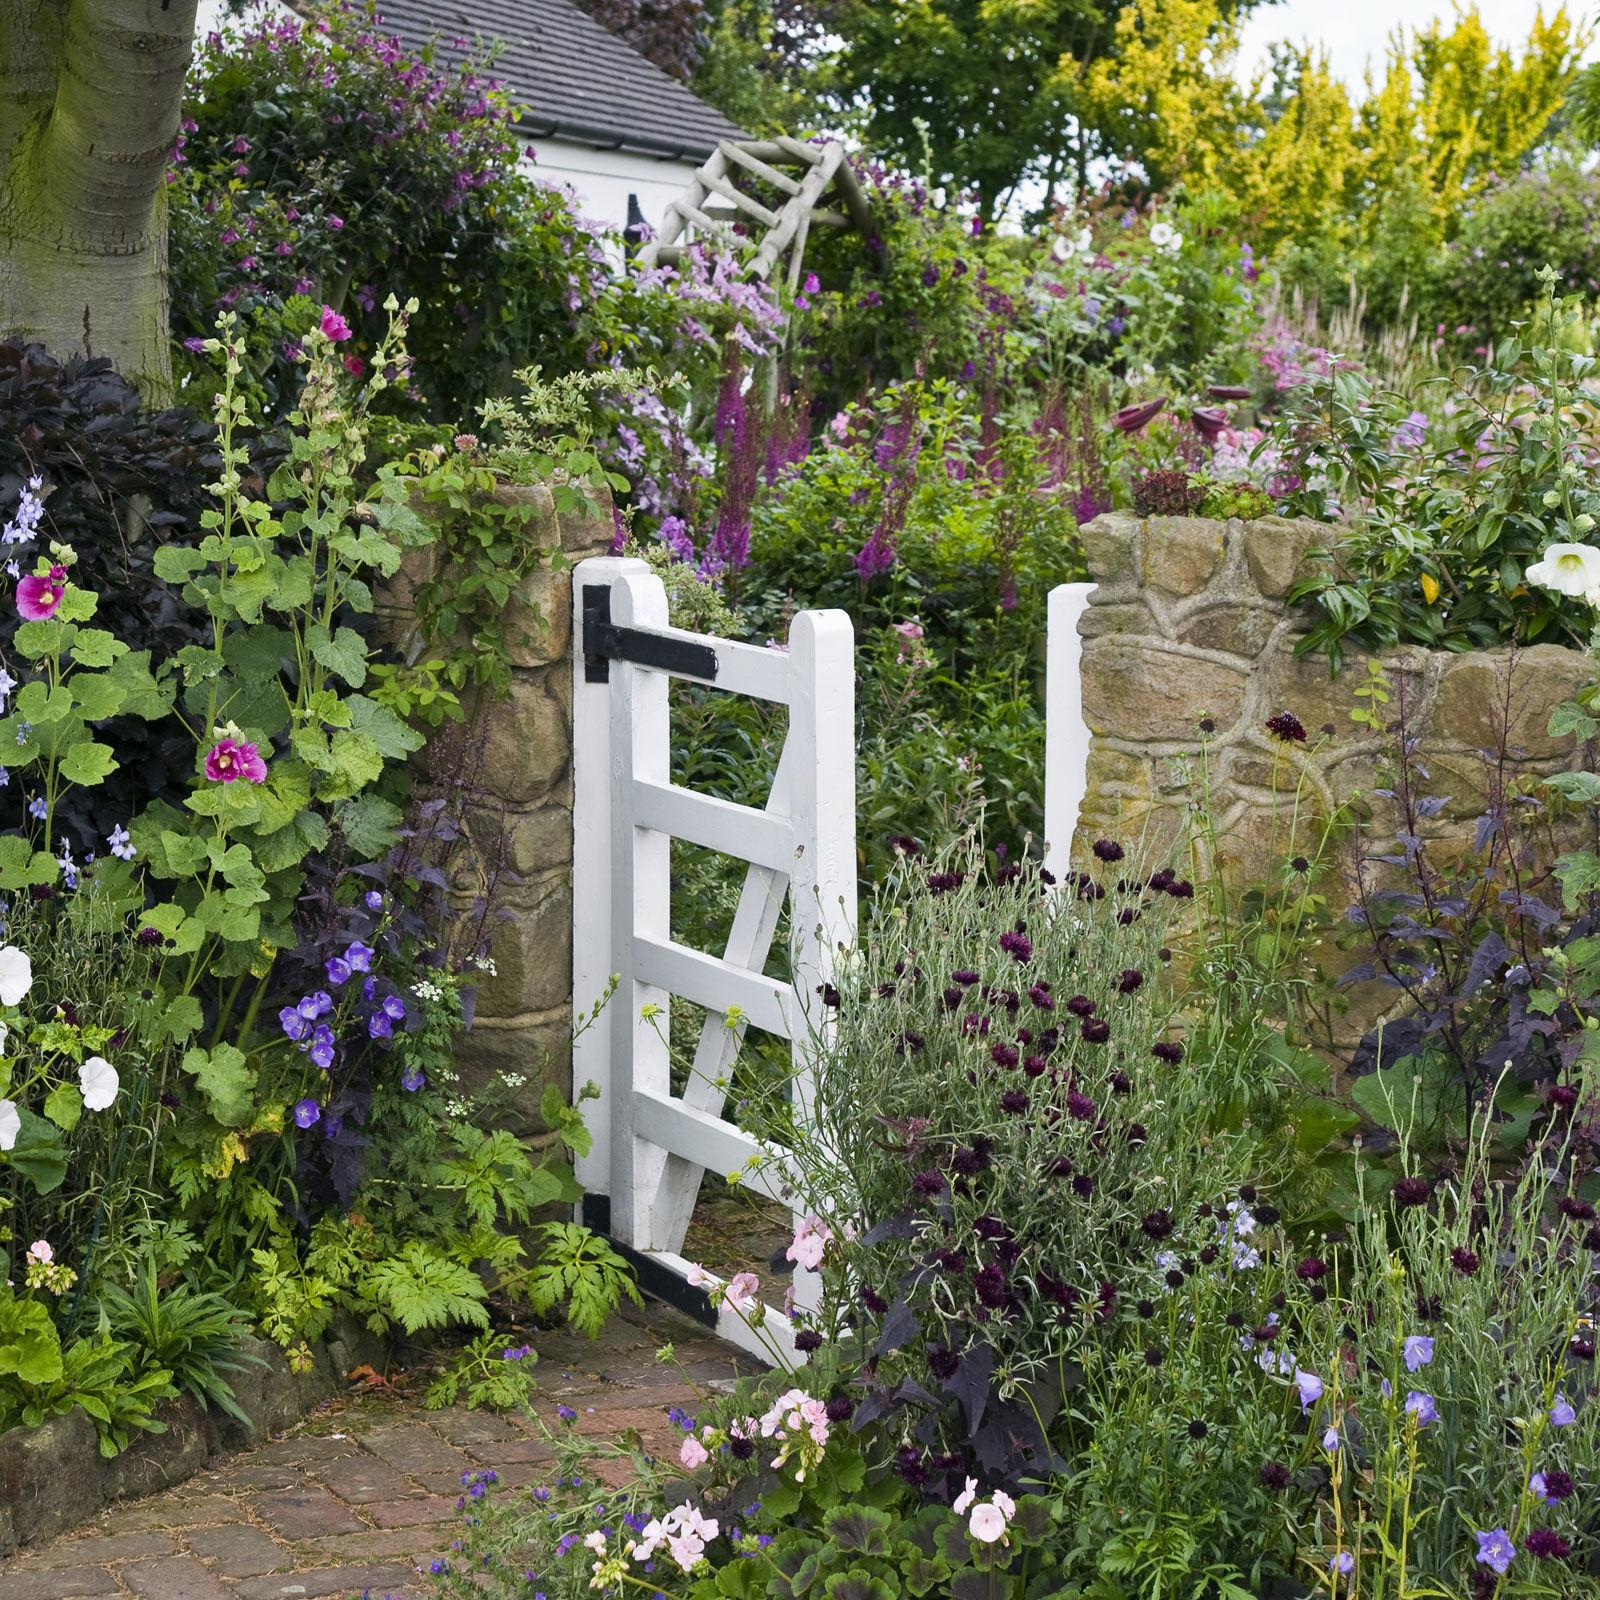 Captivating Design A Charming Girlish Garden That Will Change Your